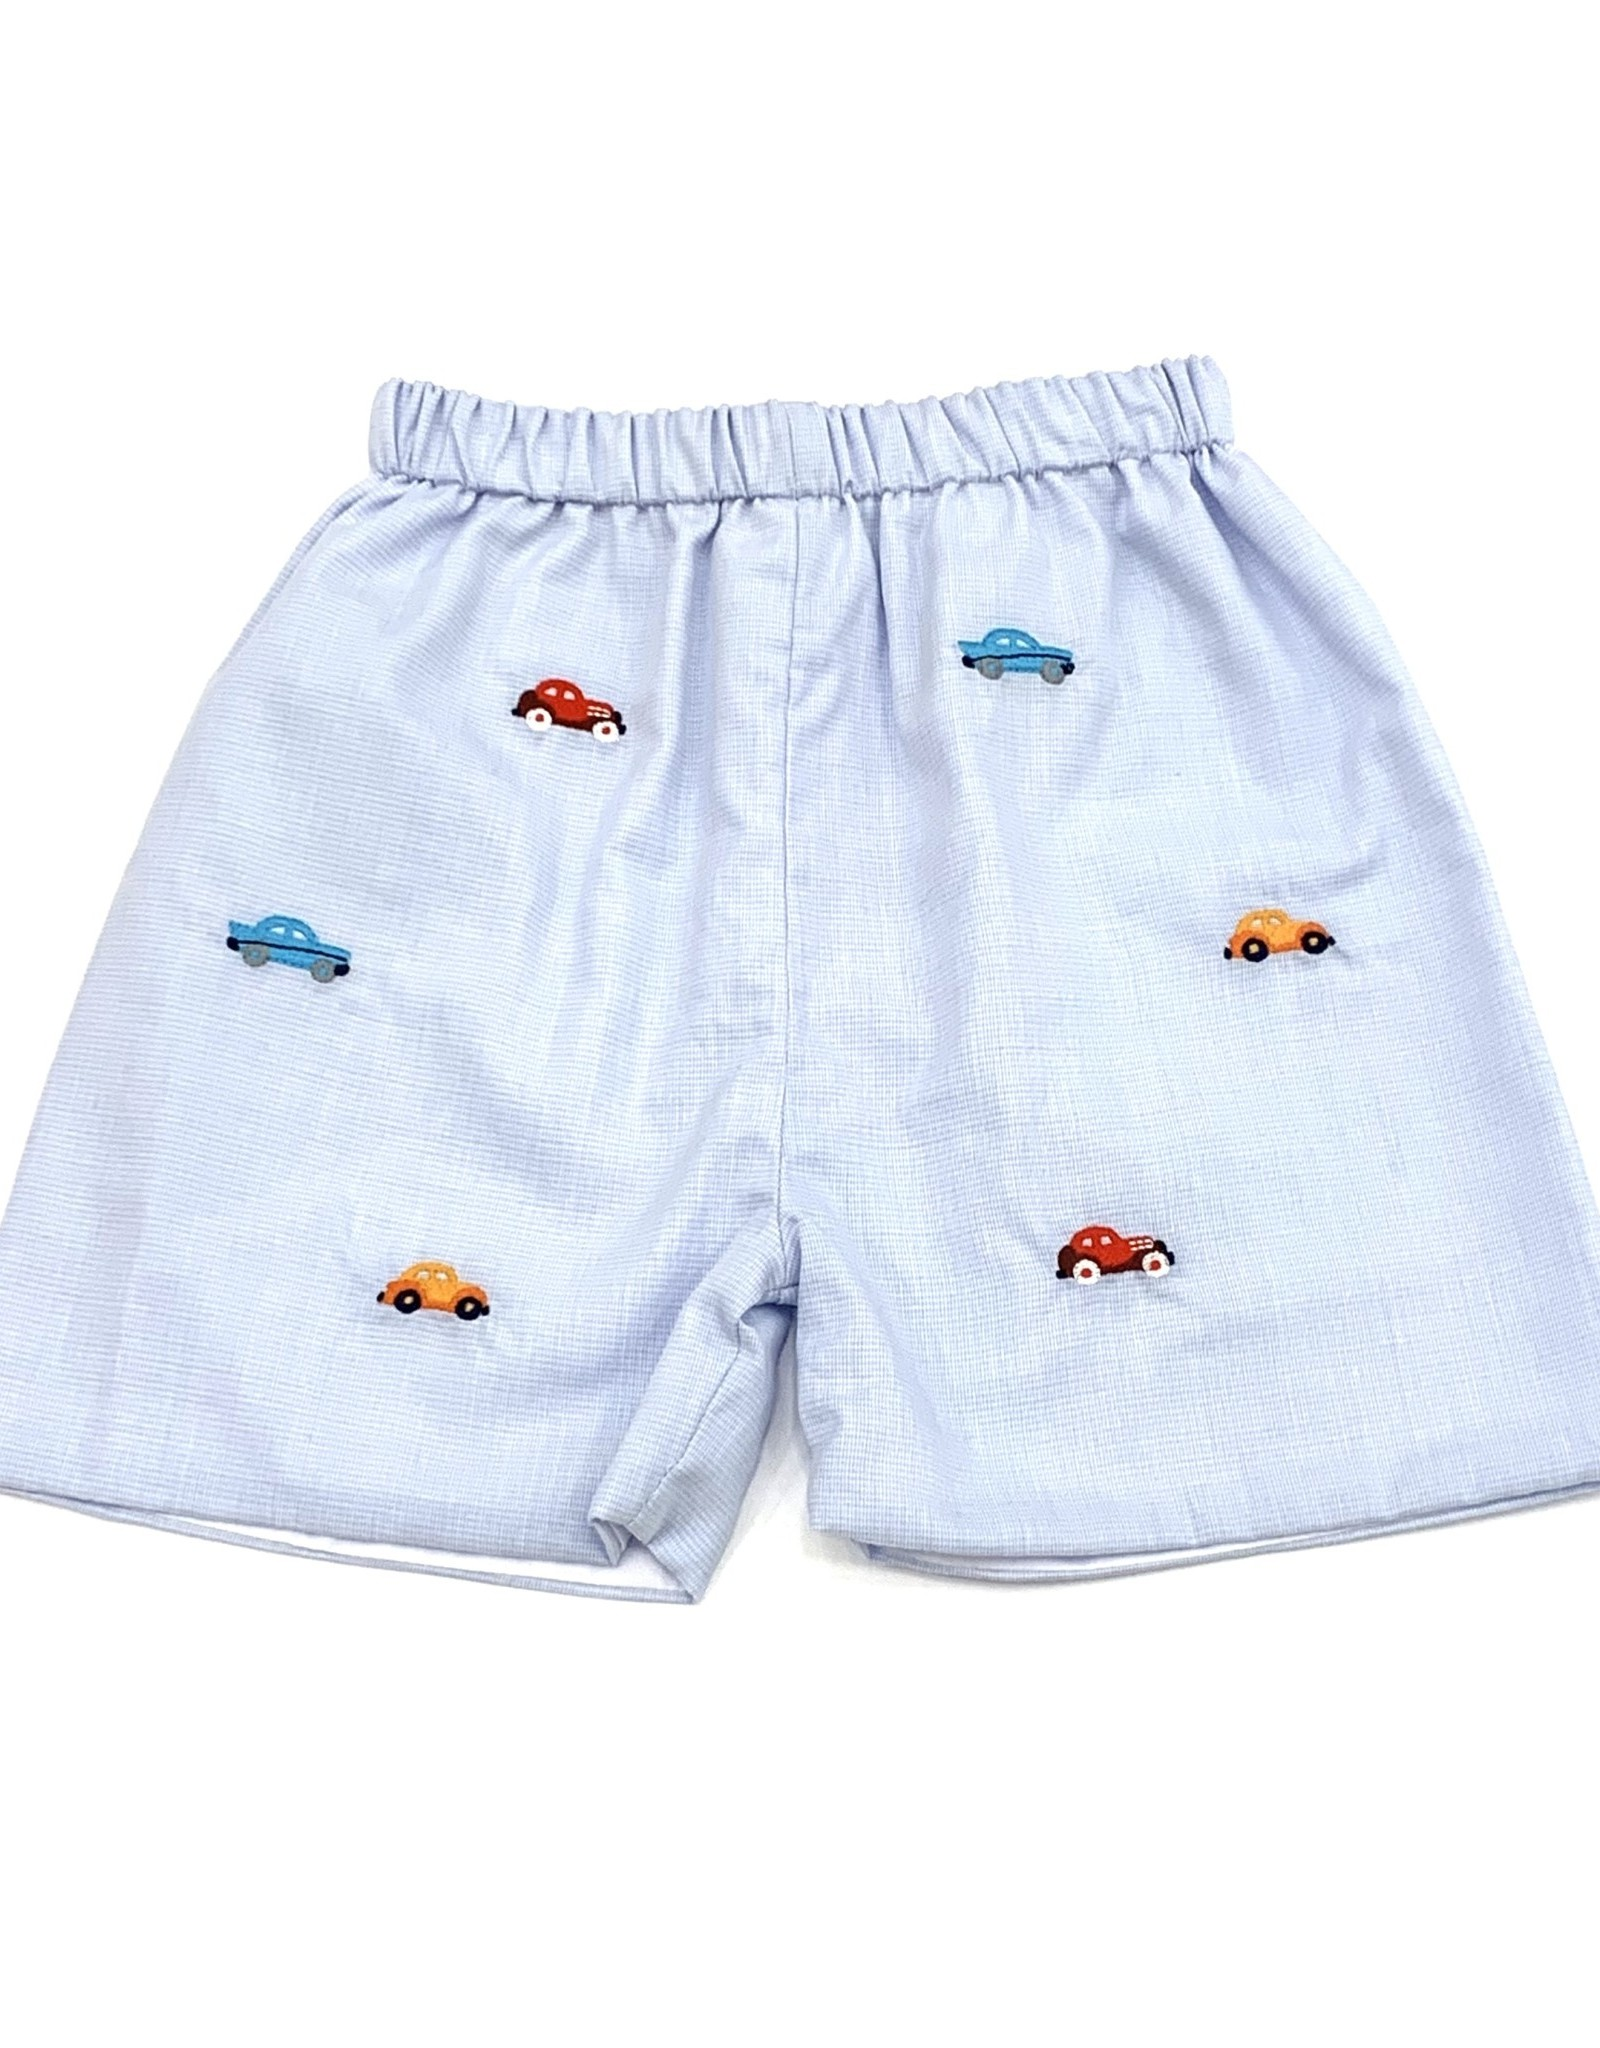 Zuccini Boys Classic Check Short With Car Embroidery